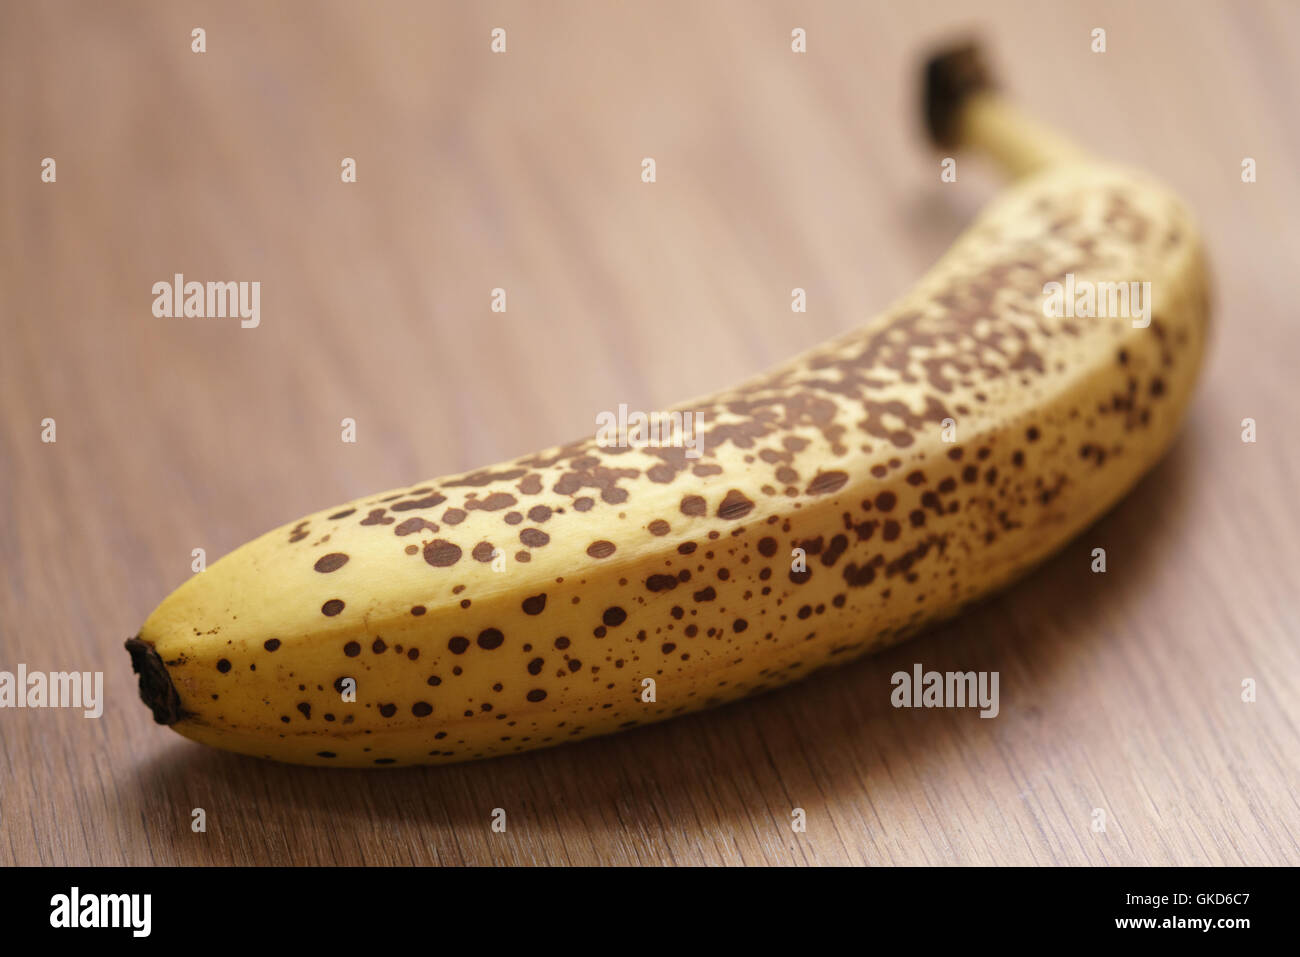 Banana On Table one banana with dots on wood table